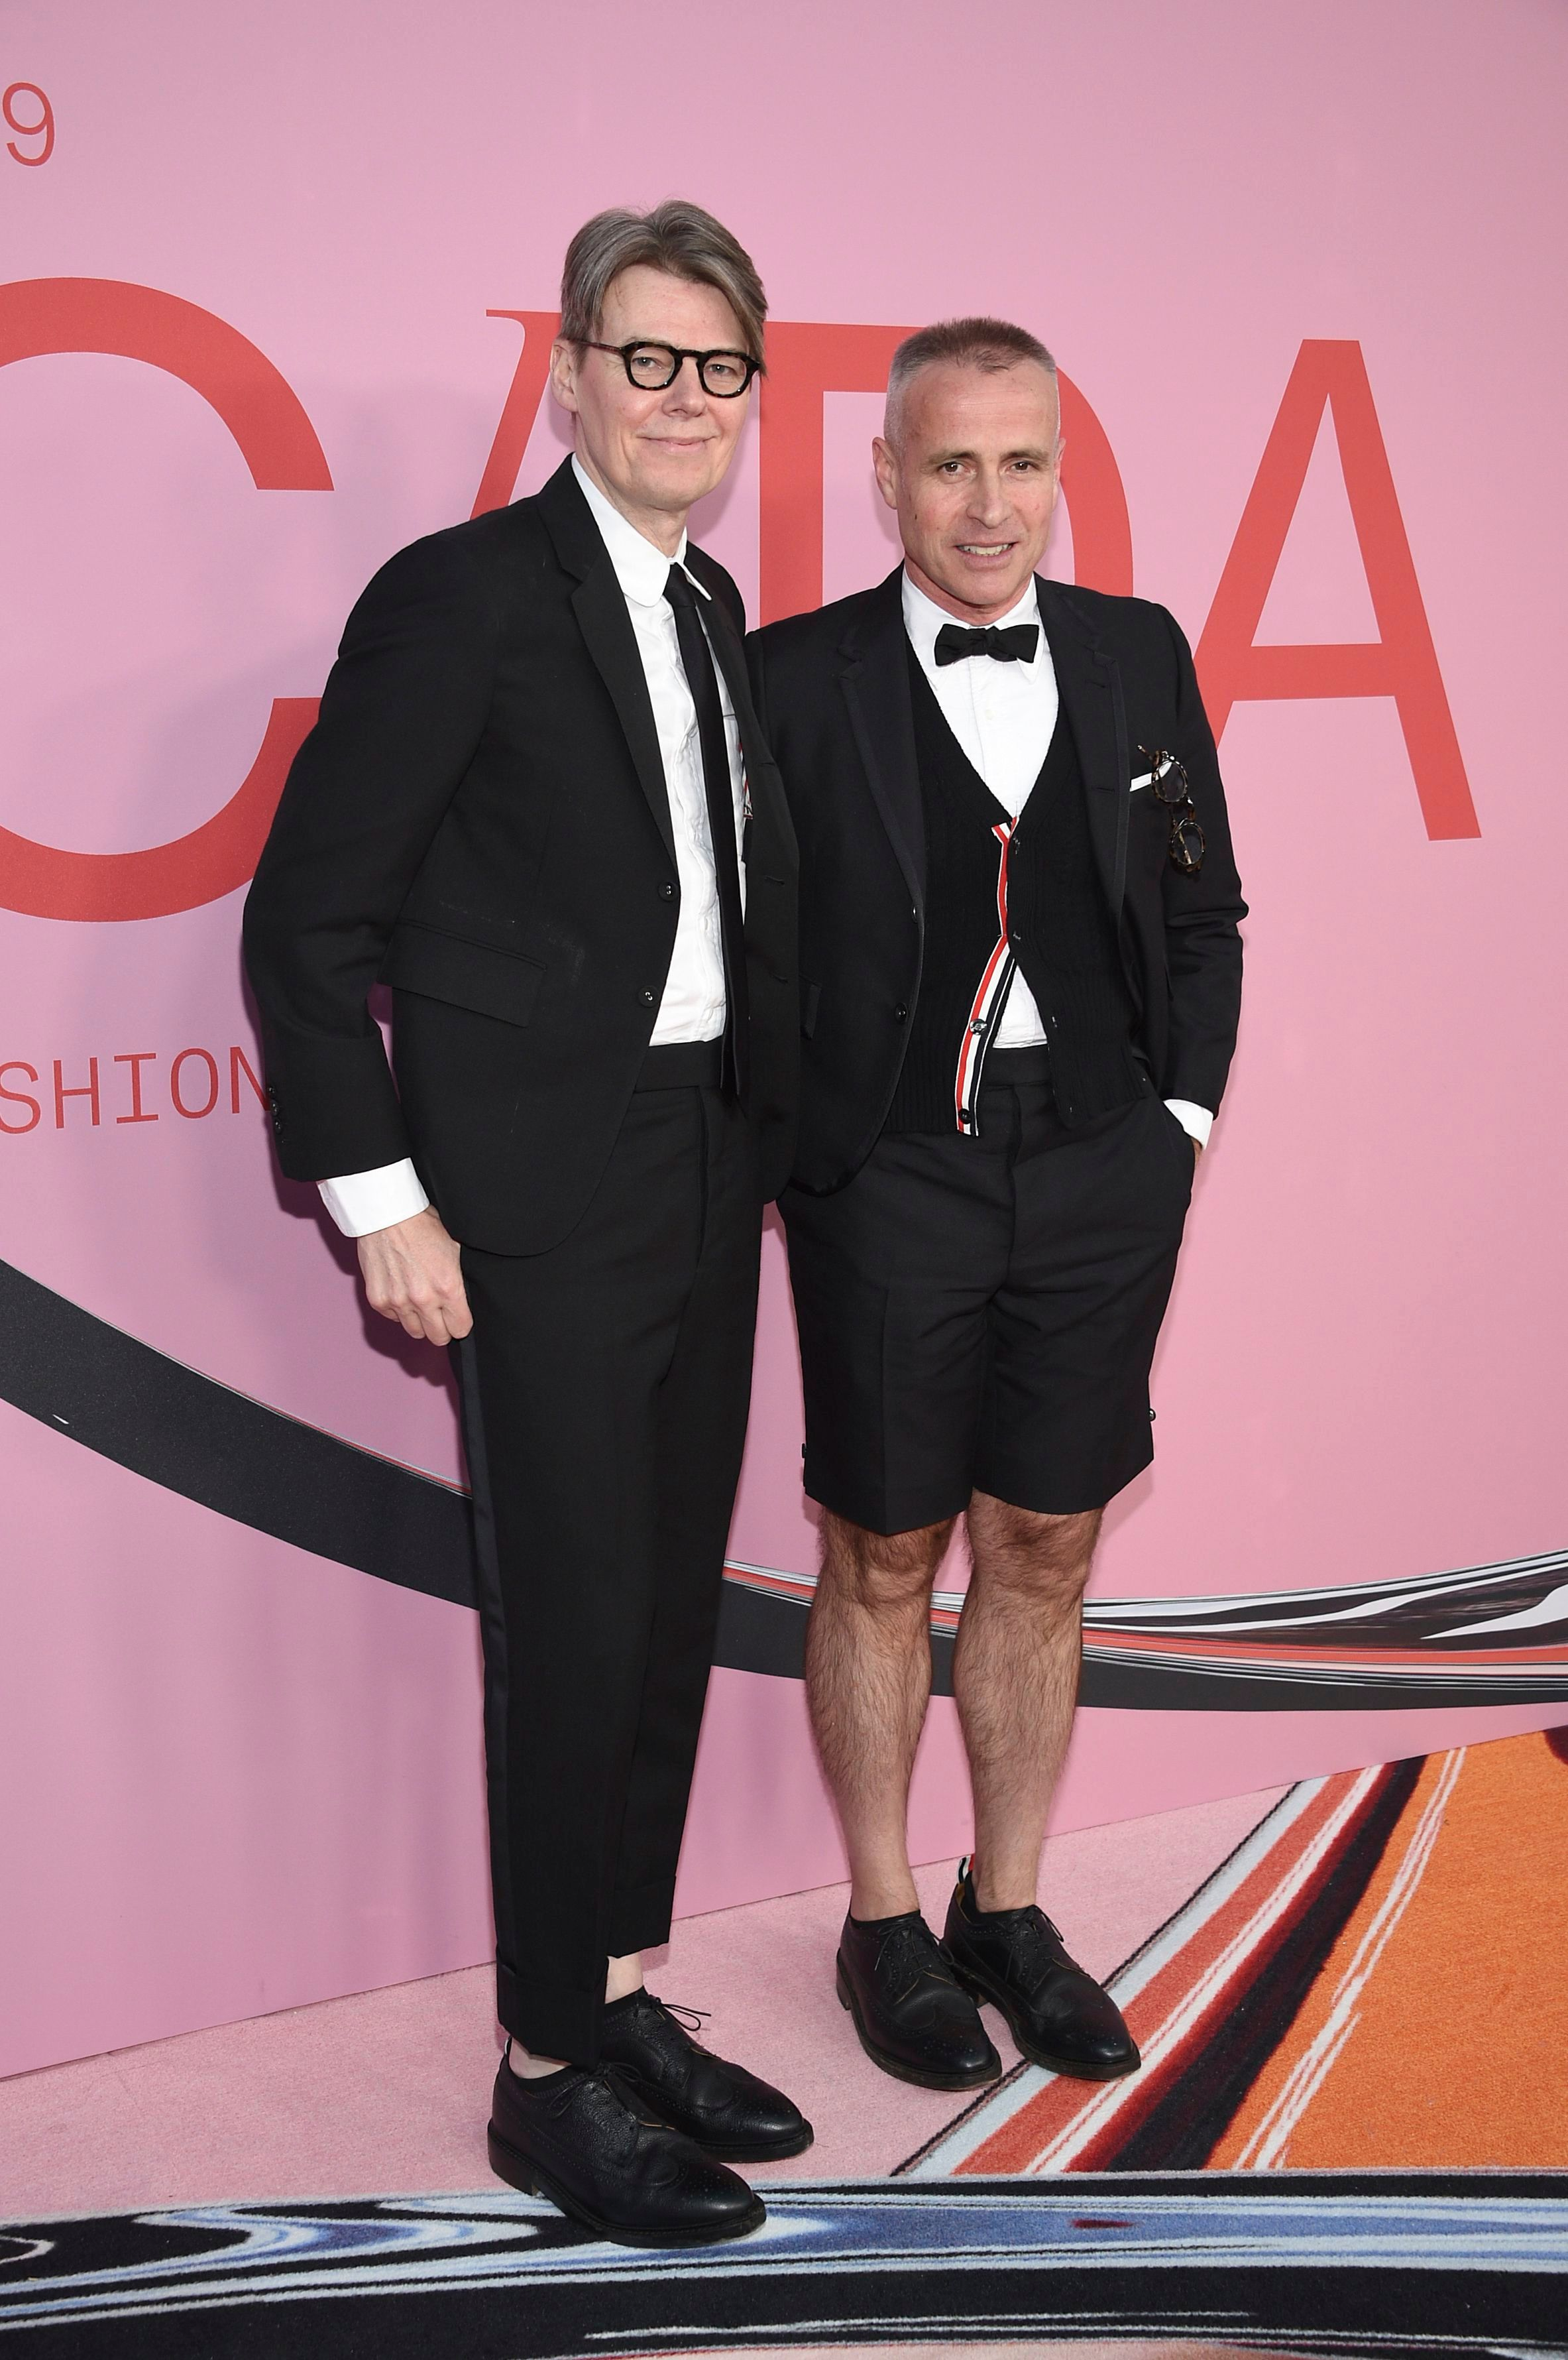 Andrew Bolton, Thom Browne. Andrew Bolton, left, and Thom Browne attend the CFDA Fashion Awards at the Brooklyn Museum, in New York2019 CFDA Fashion Awards - Arrivals, New York, USA - 03 Jun 2019